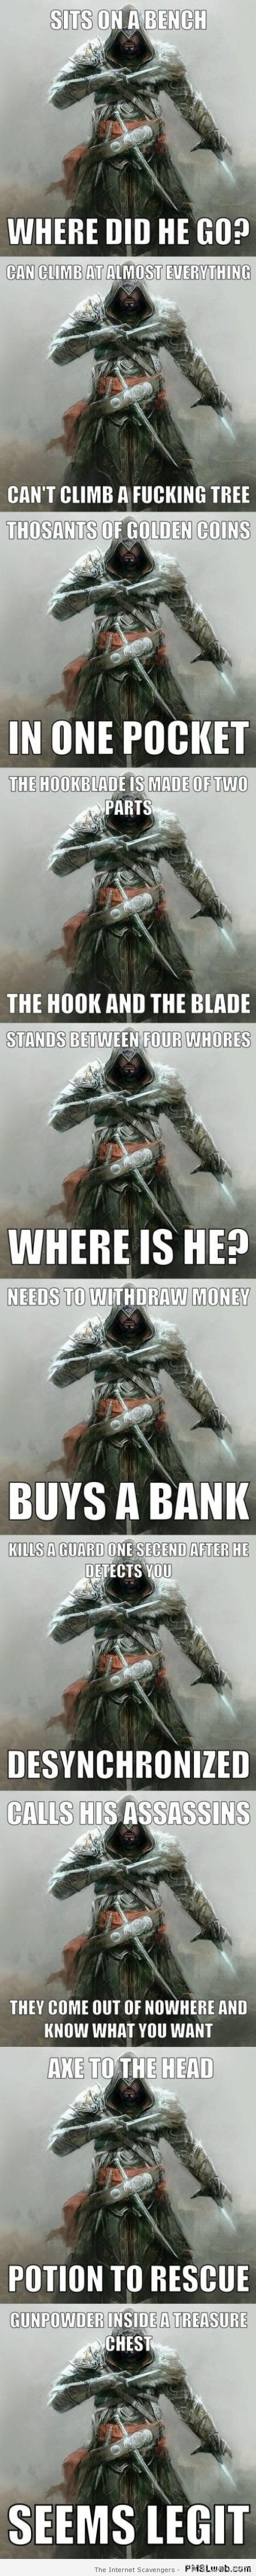 Assassin's creed memes at PMSLweb.com